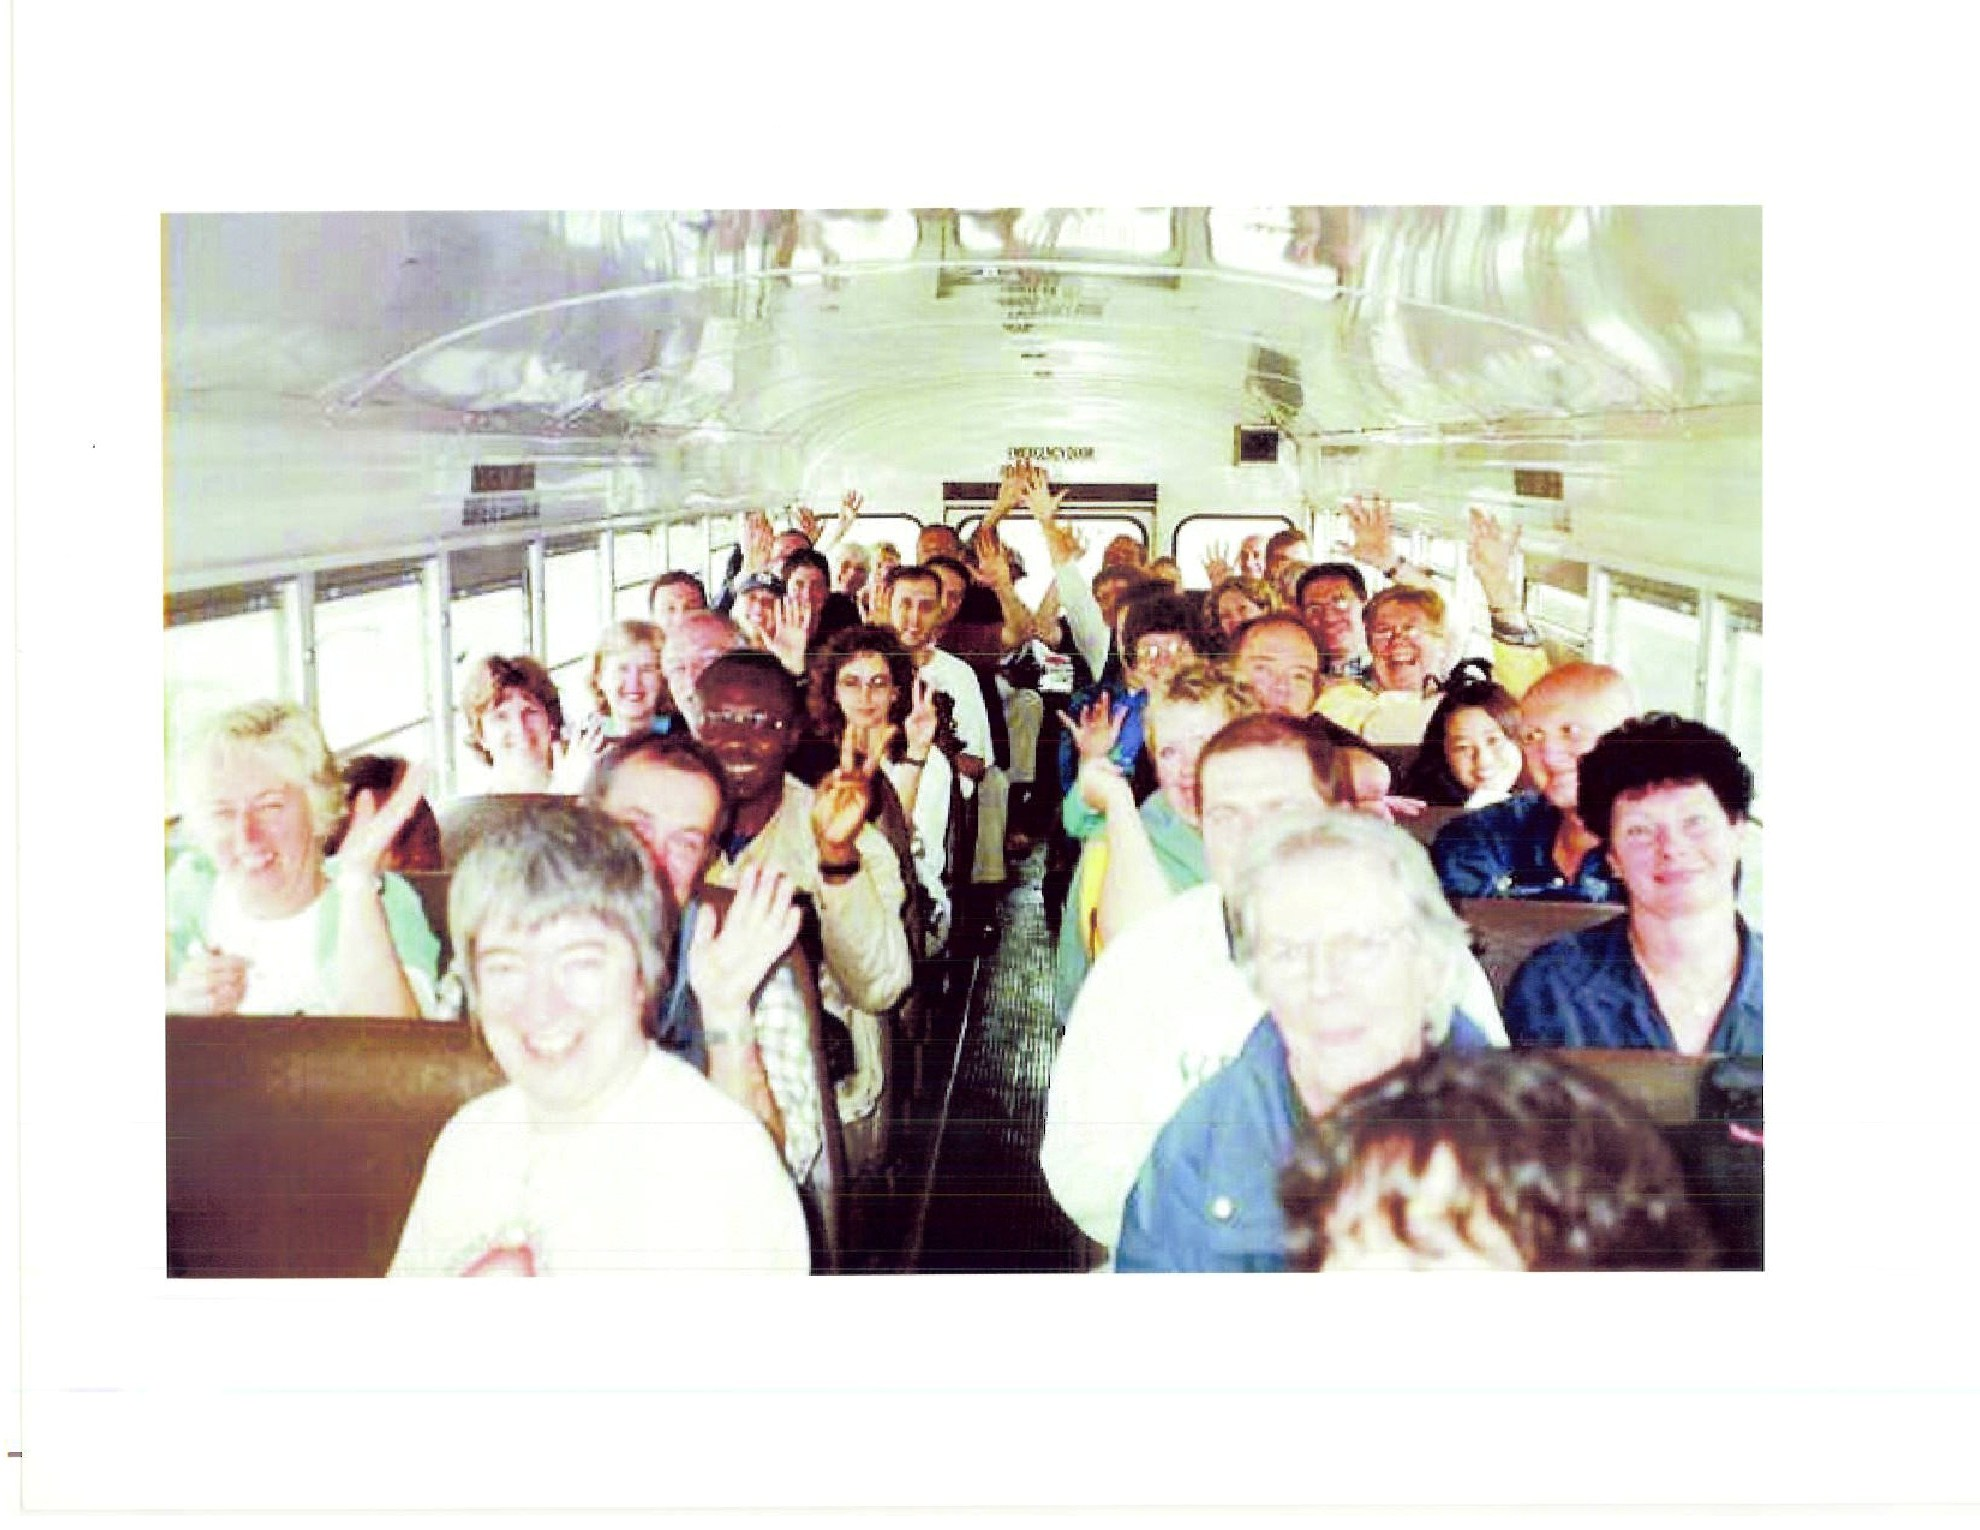 Fellow passengers of Beard and Ross on a school bus. Photo courtesy Bob Beard and Richard Ross.